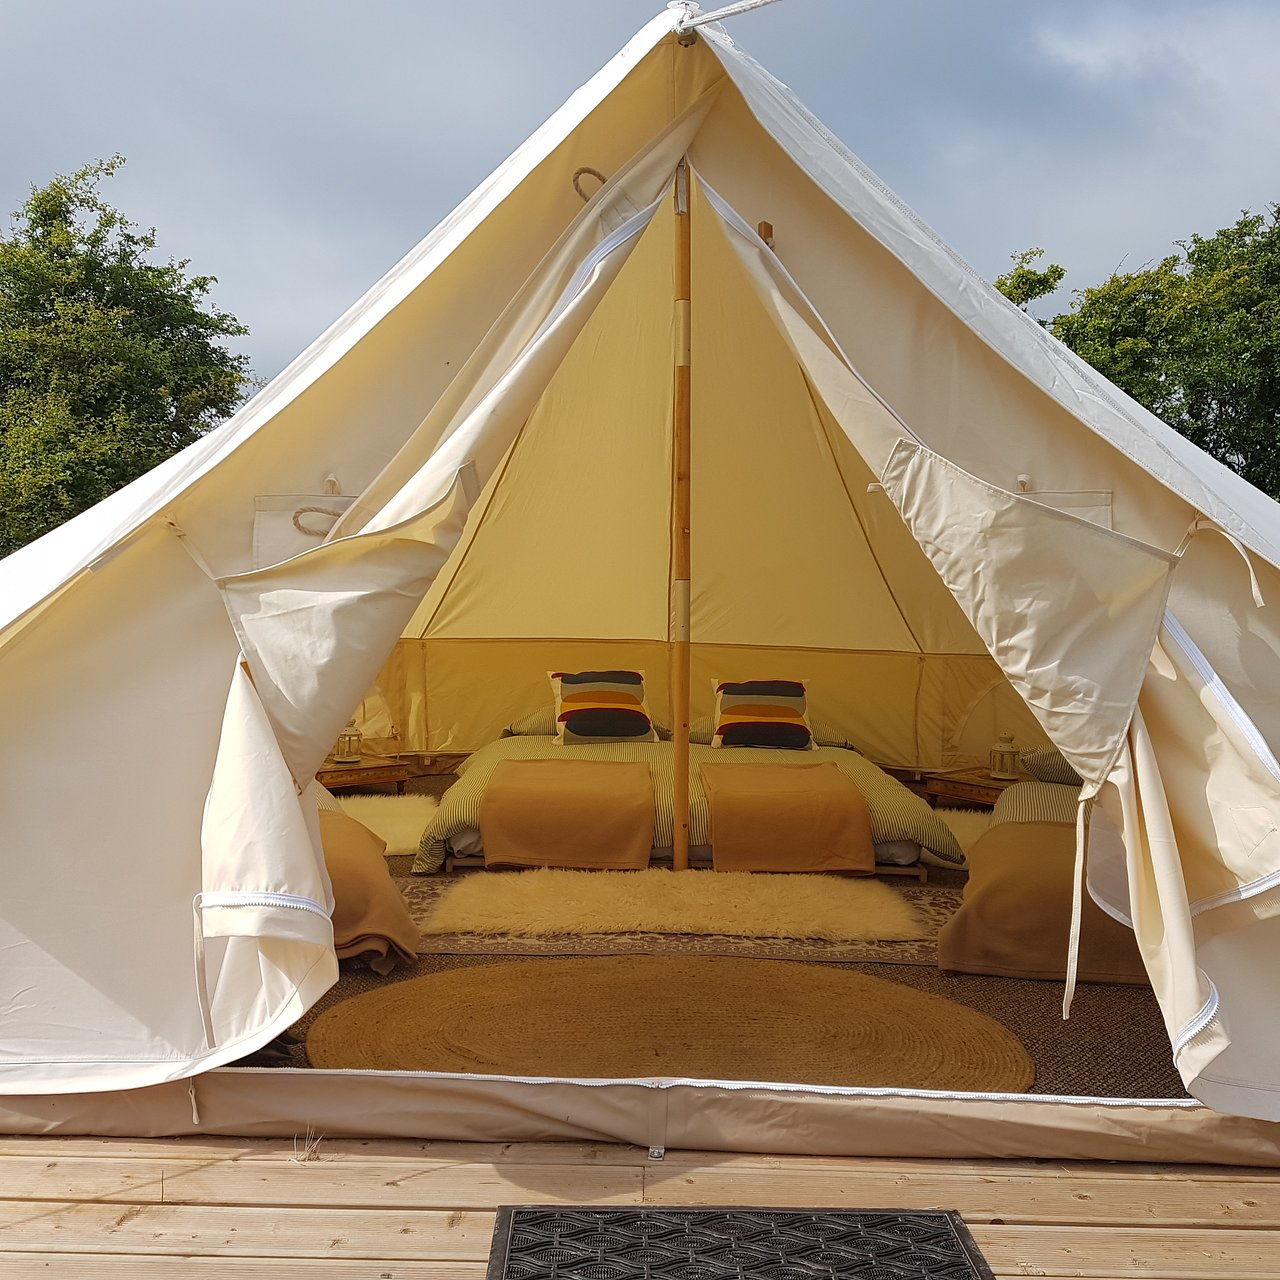 Find Cheap Tent Campgrounds in Naas, Co. Leitrim - Pitchup